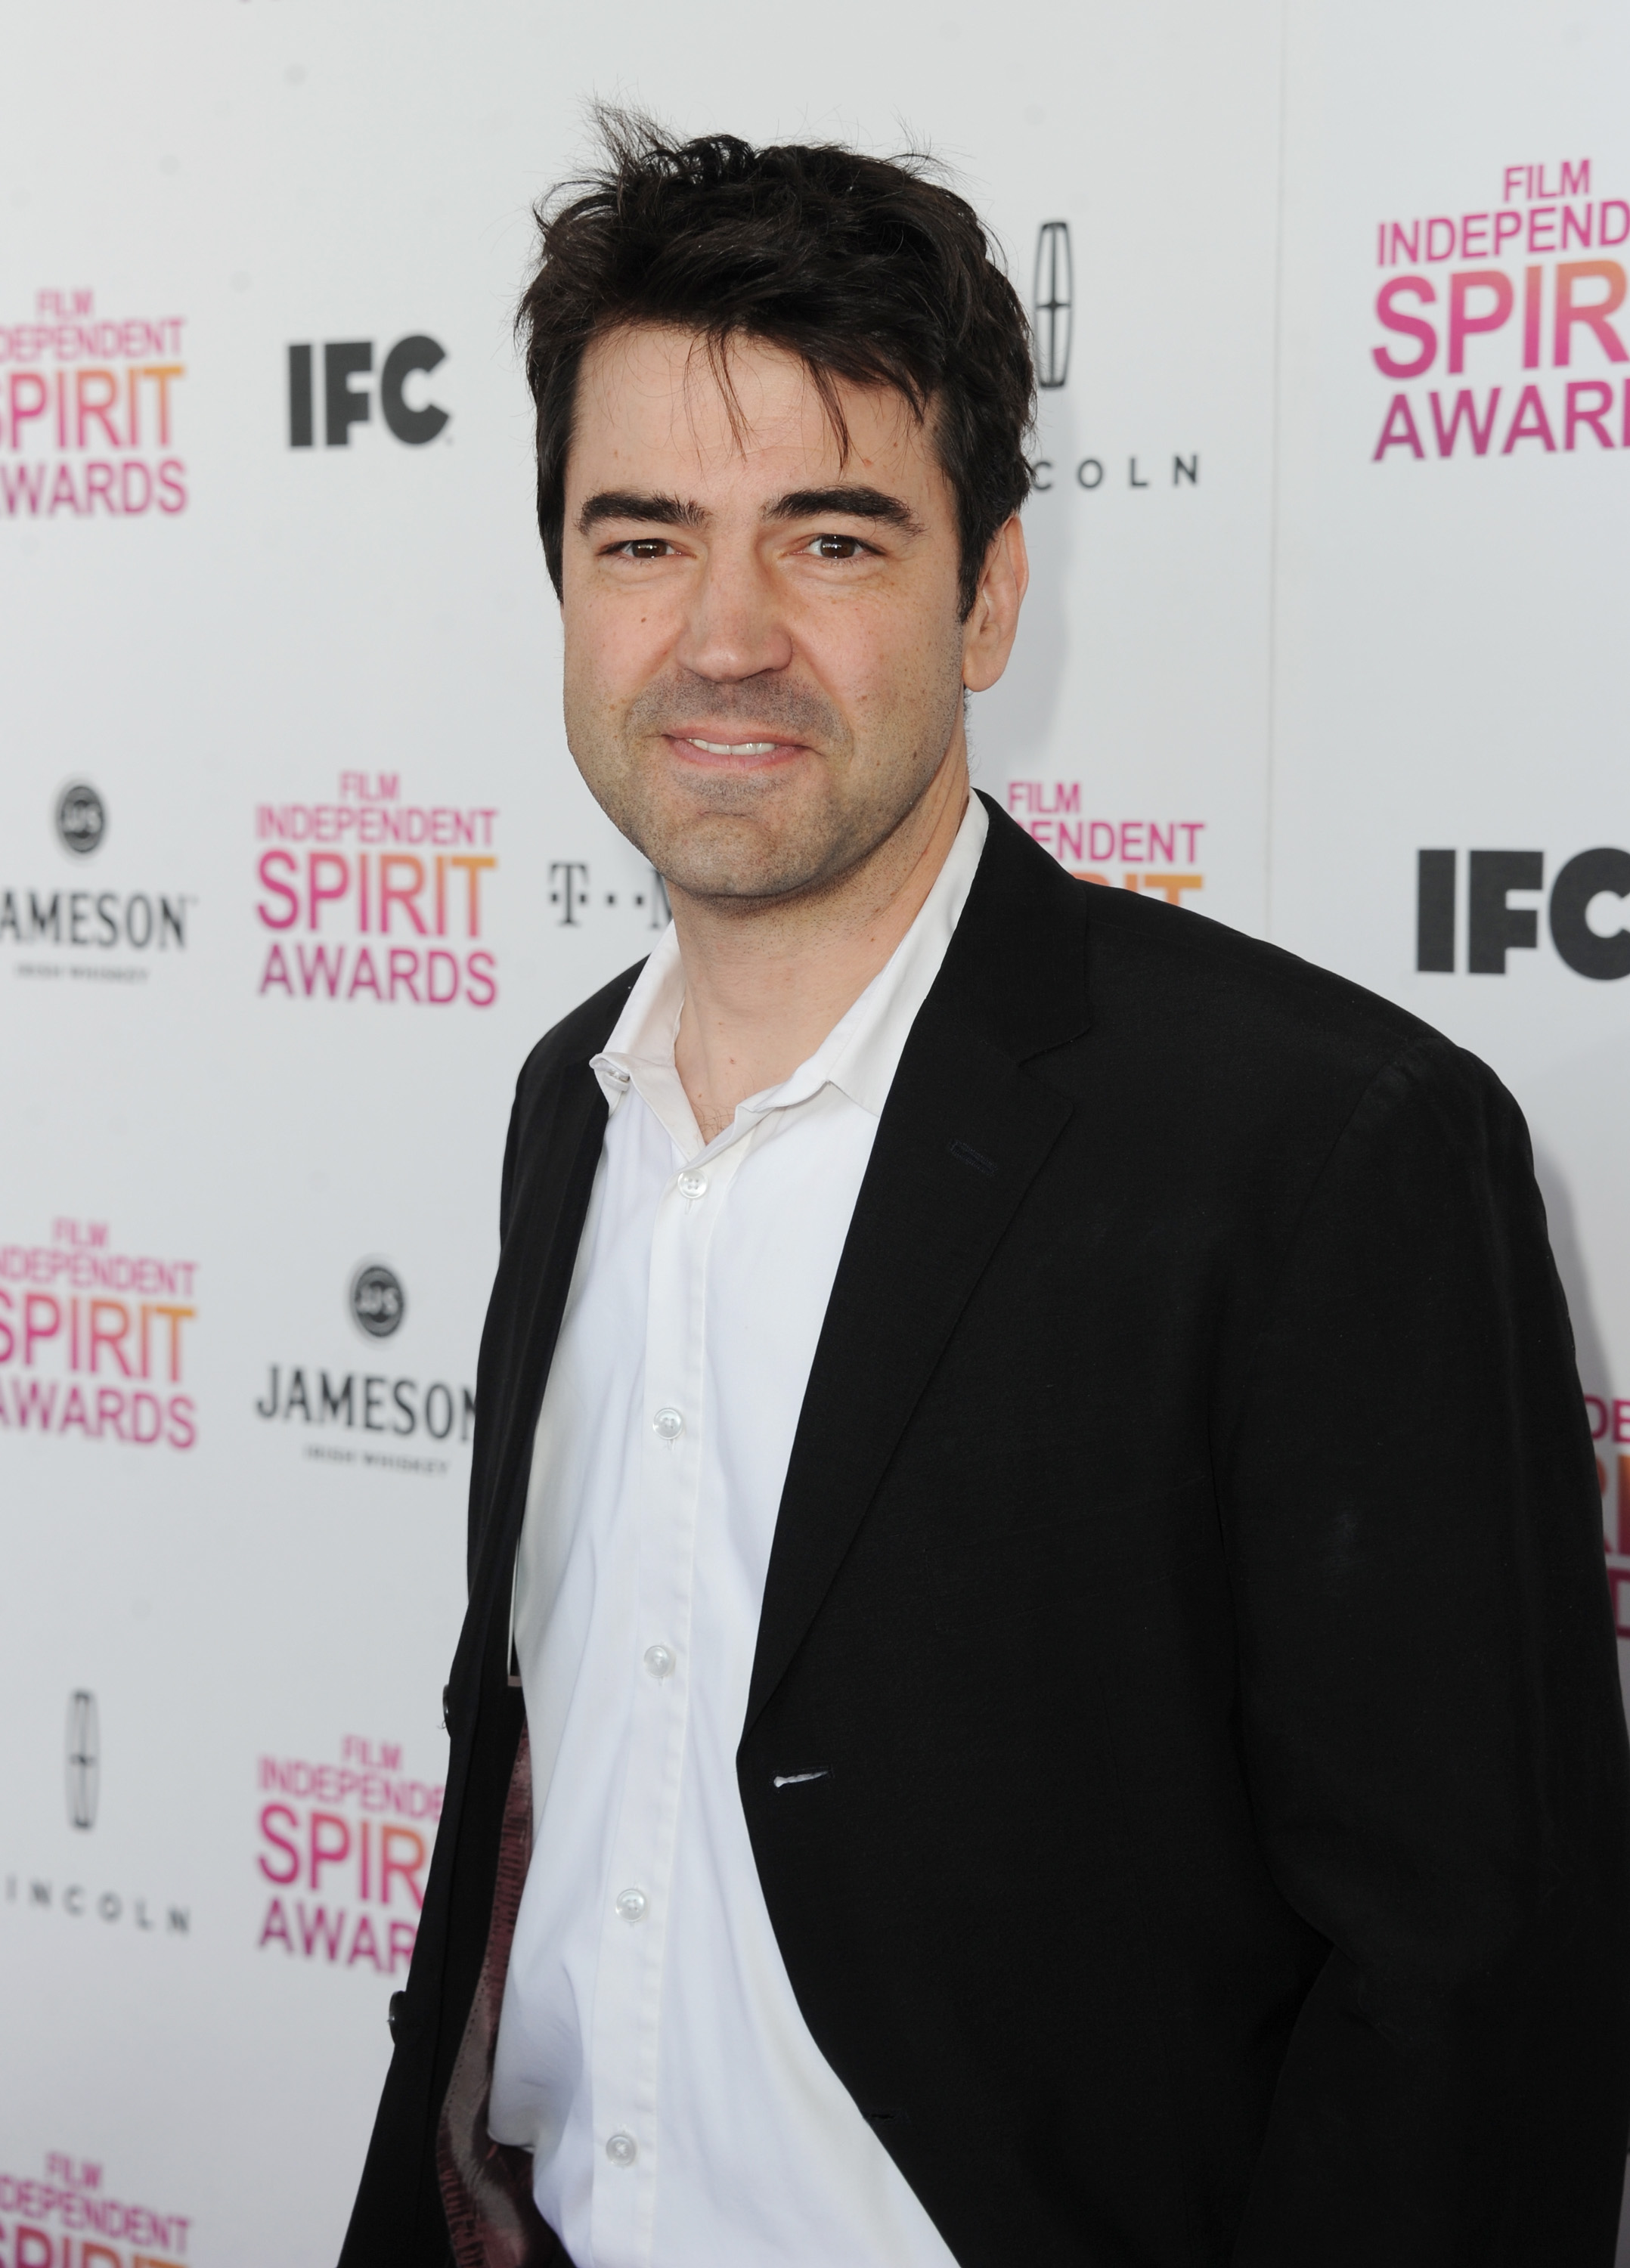 Ron Livingston on the red carpet at the Spirit Awards 2013.